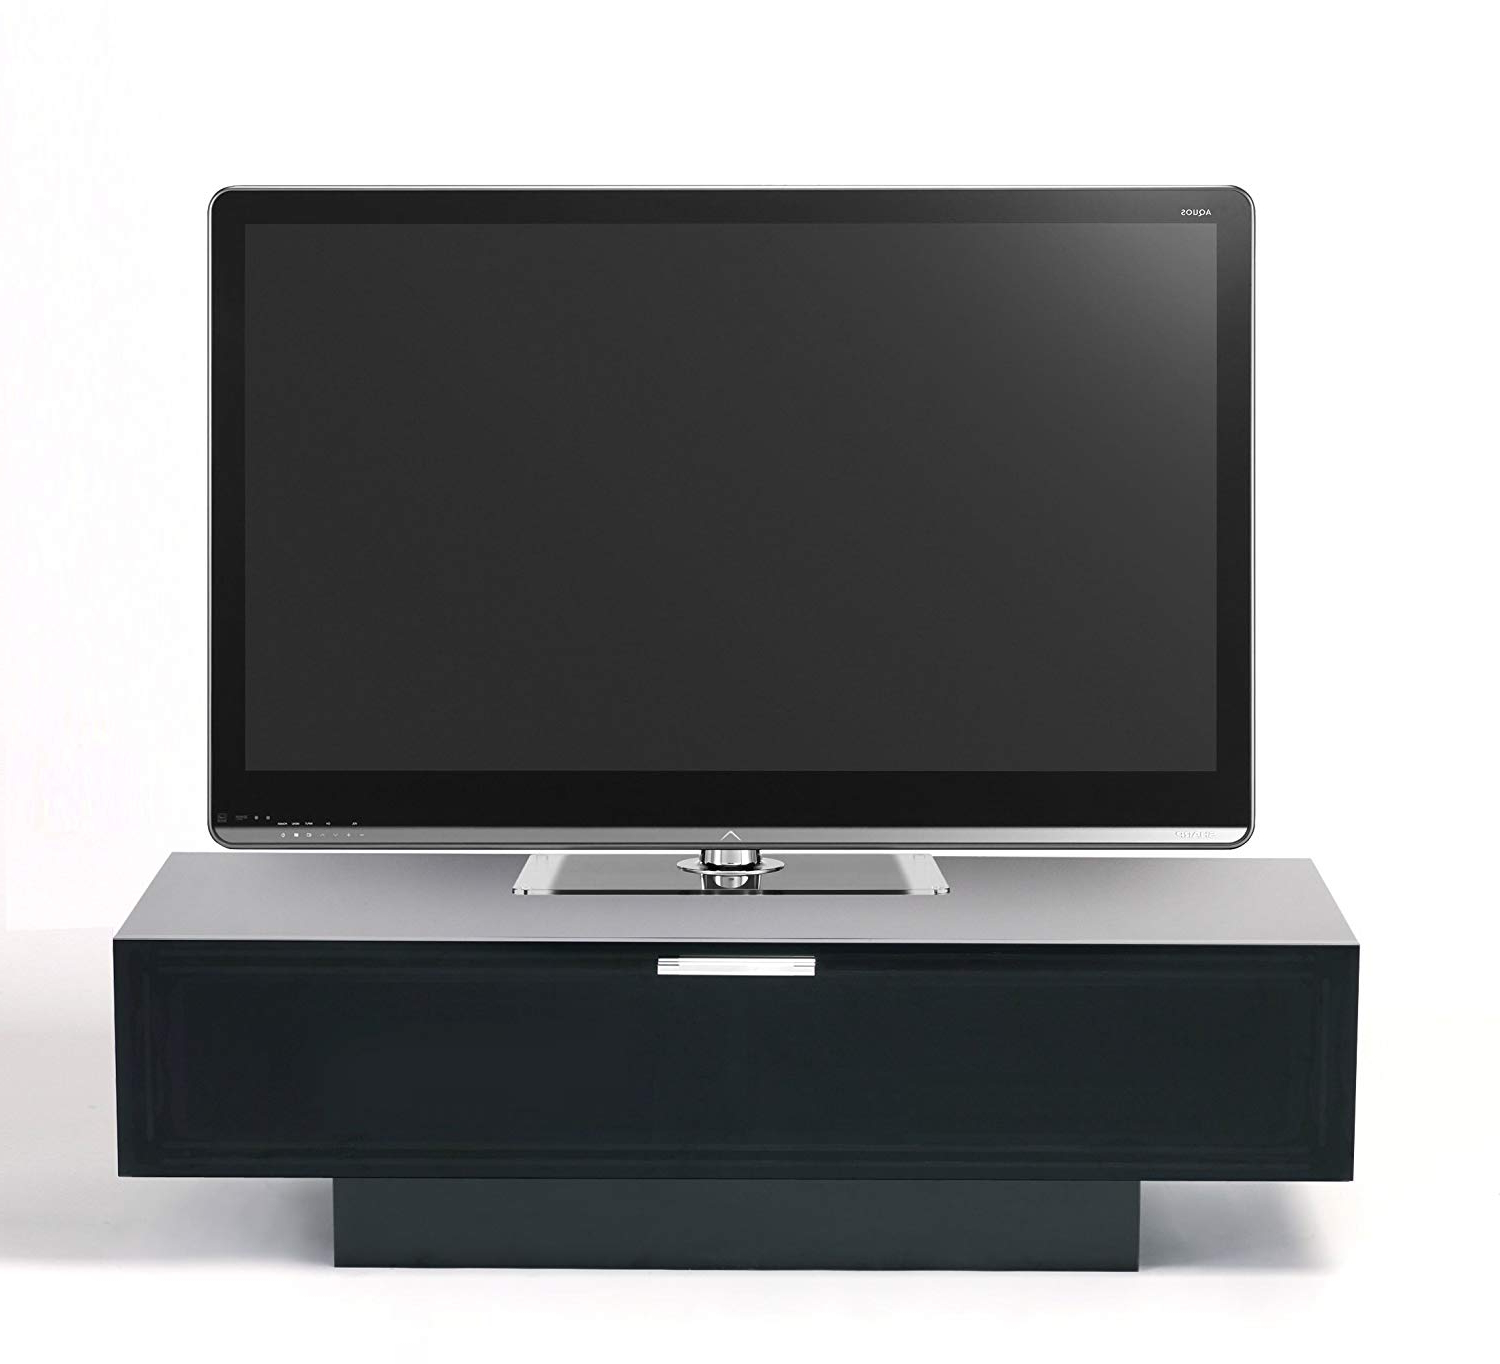 Stil Tv Stands Intended For 2018 Stilexo Stuk 4001 Tv Stand – Black Stil Stand Stuk 4001 Bl (View 12 of 20)